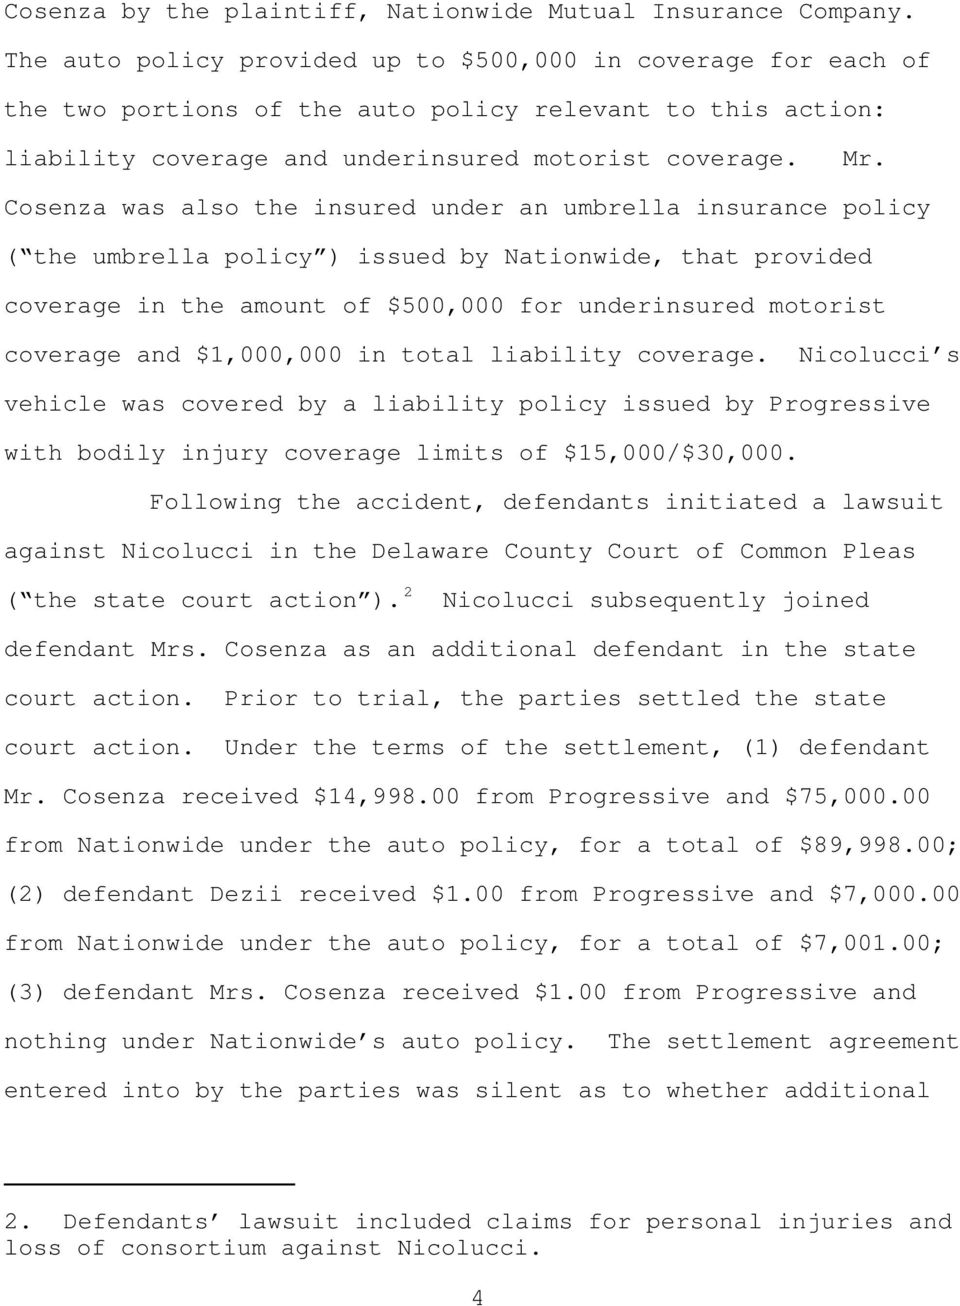 Cosenza was also the insured under an umbrella insurance policy ( the umbrella policy ) issued by Nationwide, that provided coverage in the amount of $500,000 for underinsured motorist coverage and